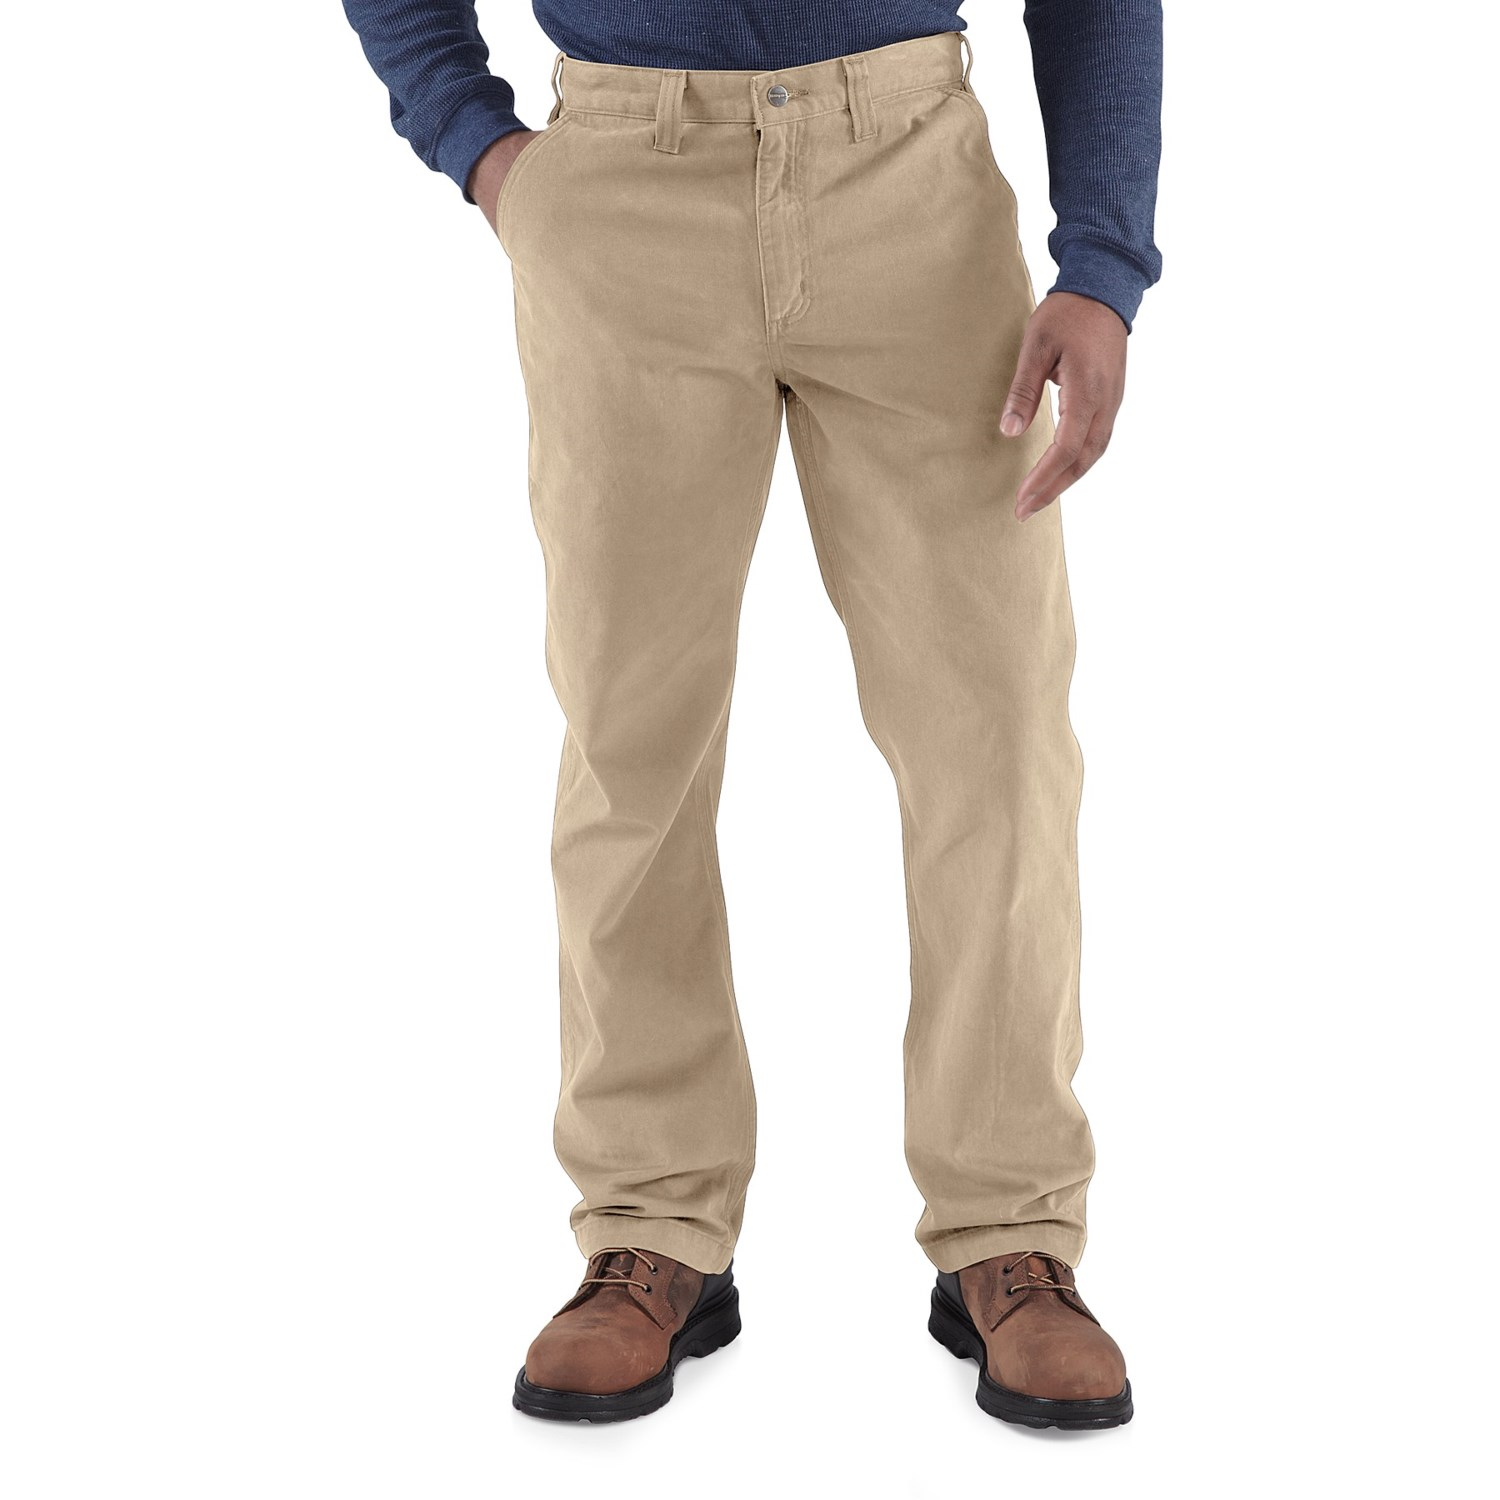 Khaki Work Pants For Men